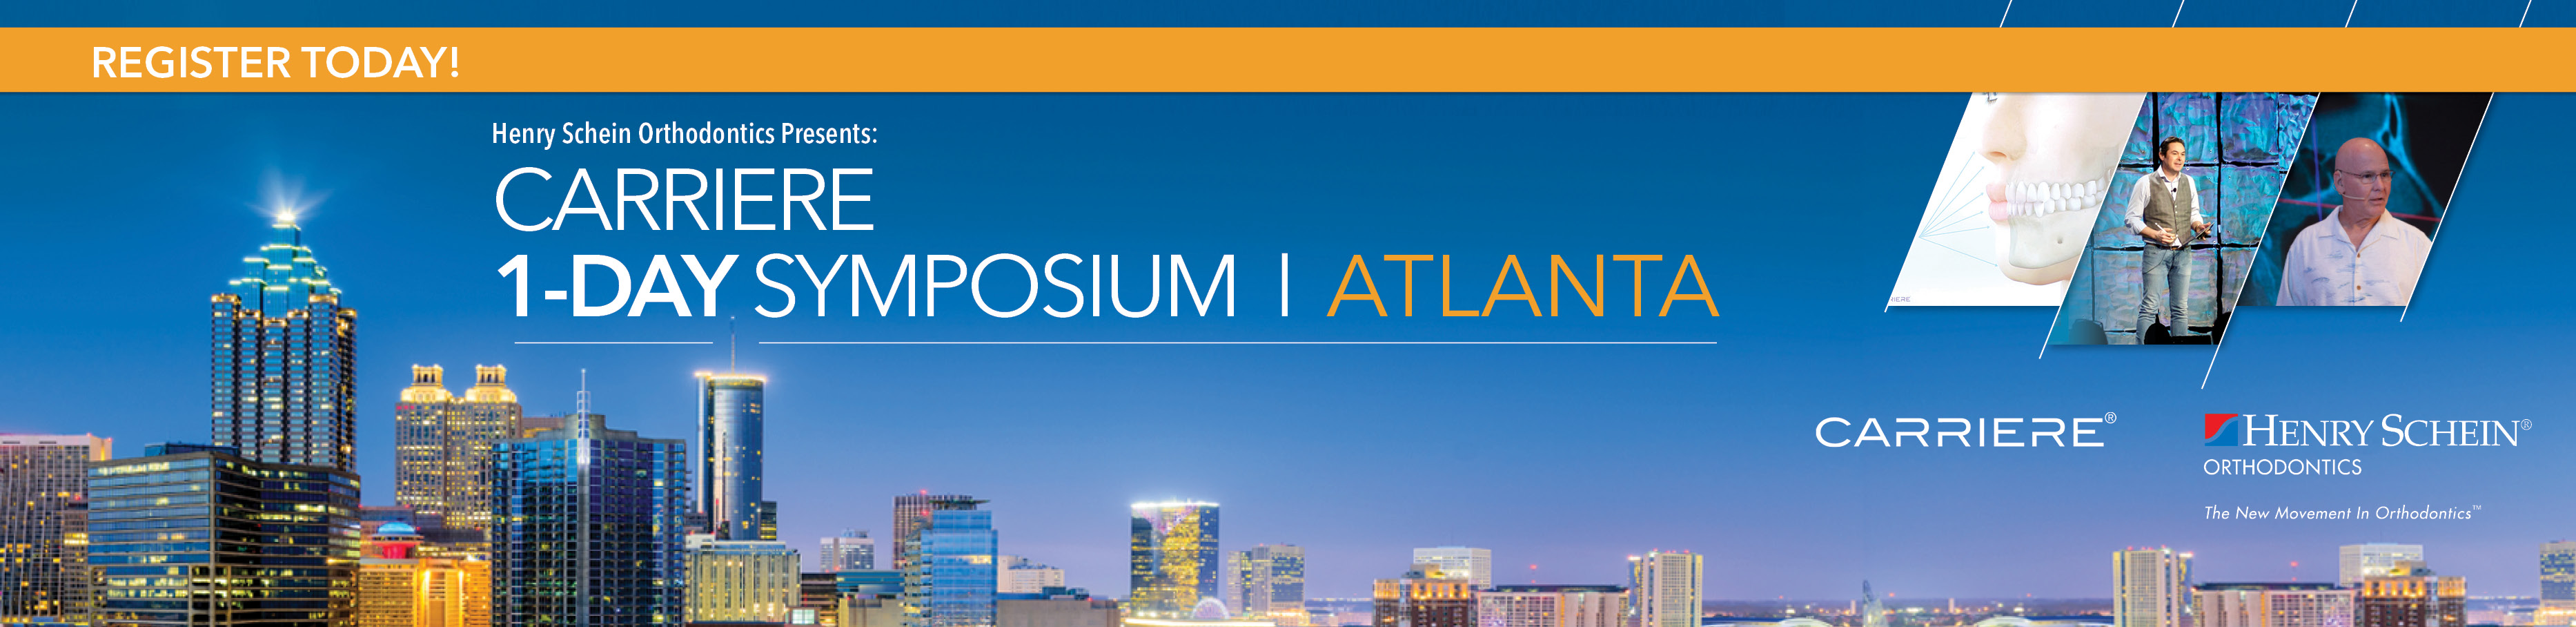 Carriere 1-Day Symposium Atlanta